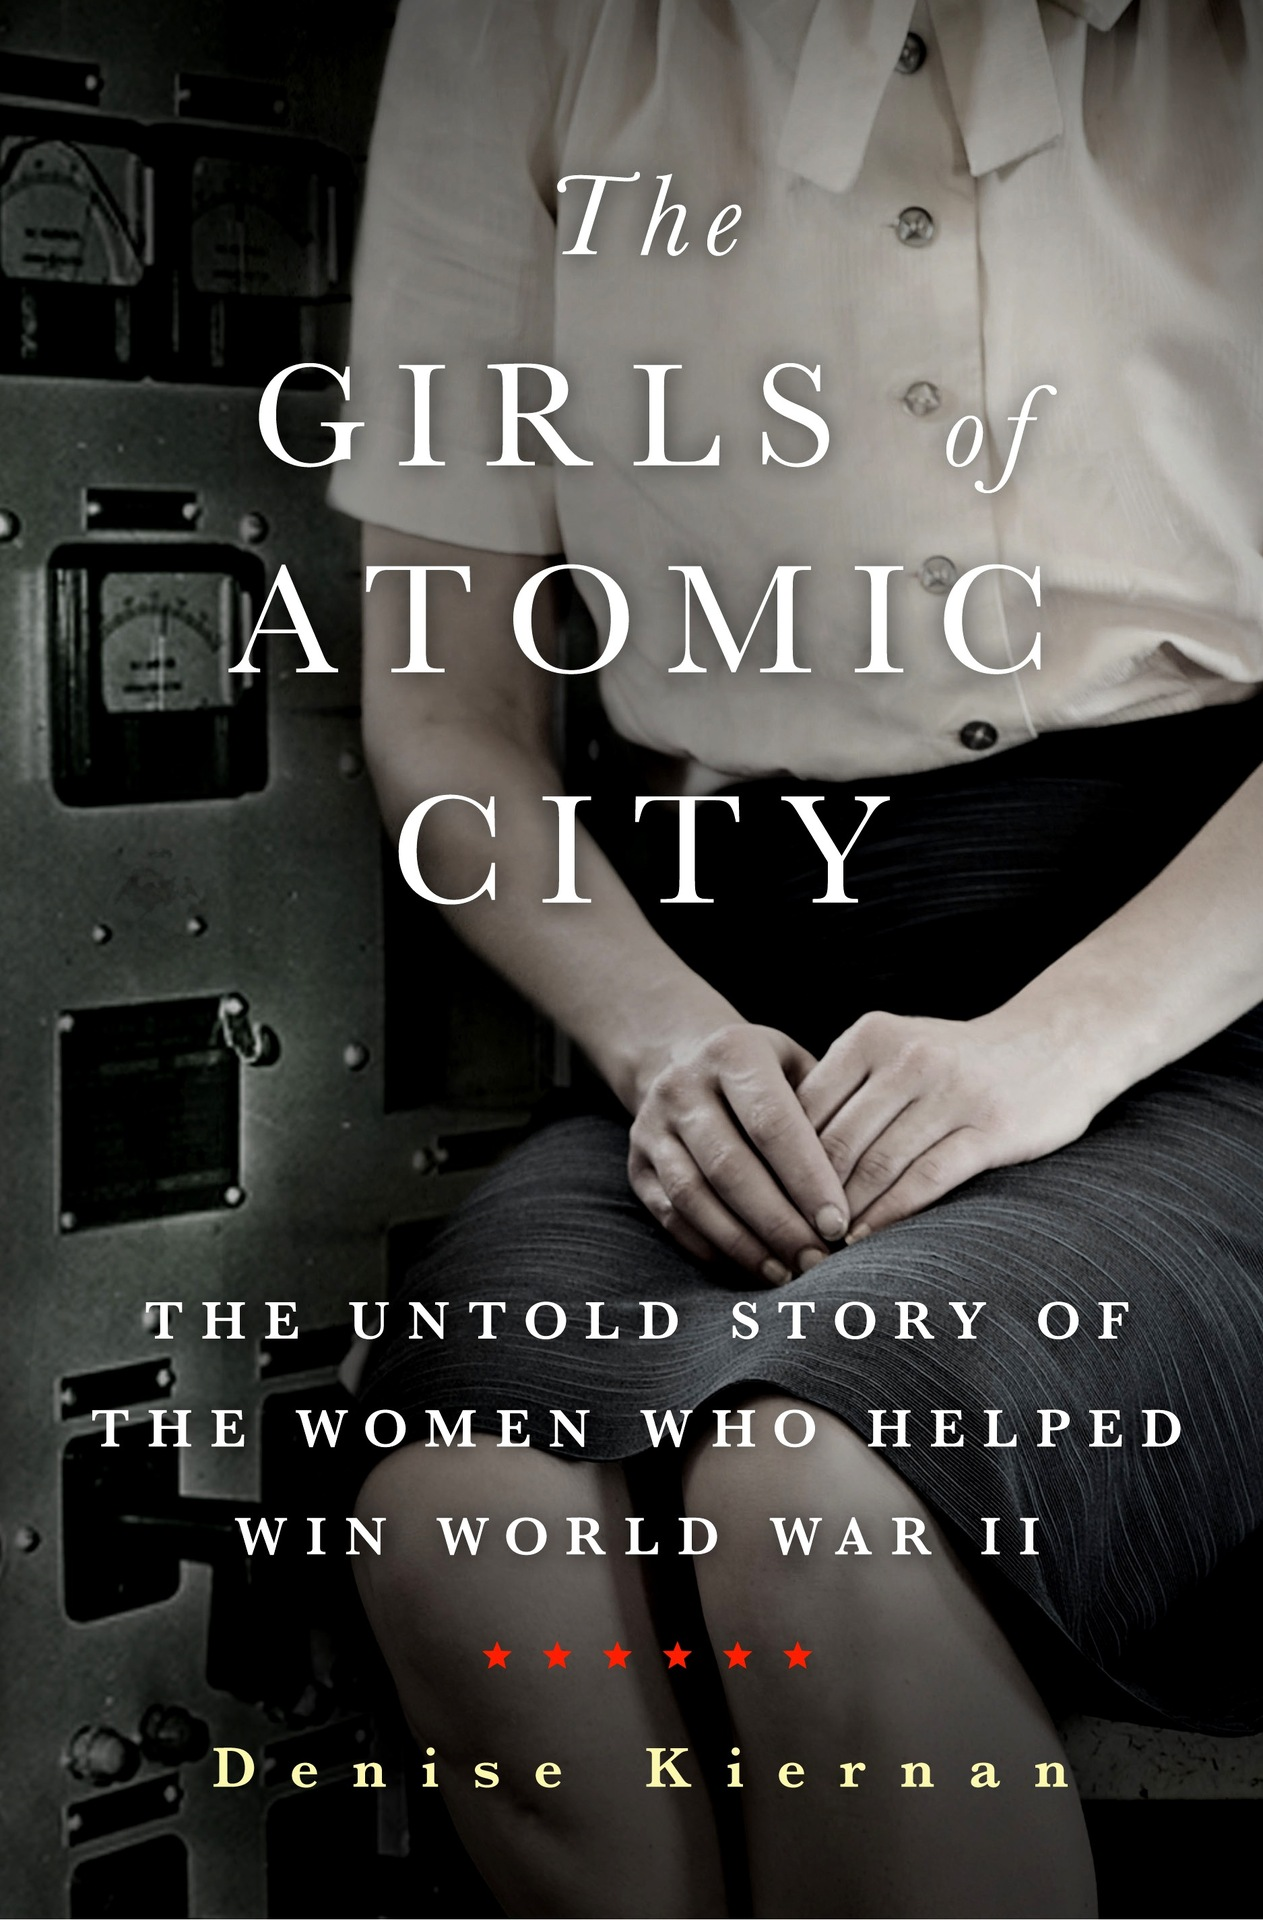 This just in!  My wife and sometimes co-author Denise Kiernan just got the cover of her next book,  The Girls of Atomic City,  about the women who unknowingly worked to create the fuel for the first bomb.  It's a true story—a narrative nonfiction title that will be published by Touchstone/Simon & Schuster in March 2013.  I'm proud of her. It's a project she's been working on, in various ways, for the last seven years or so.  To find out more, you can check out  Denise's website …  Sign up for the newsletter at the  book site …  Check out her old-timey WWII-era images on her  Tumblr blog .  You can pre-order via  Amazon .  Or pre-order a signed copy via our indie bookstore,  Malaprops .  I'll post again about this when she gets a trailer together.